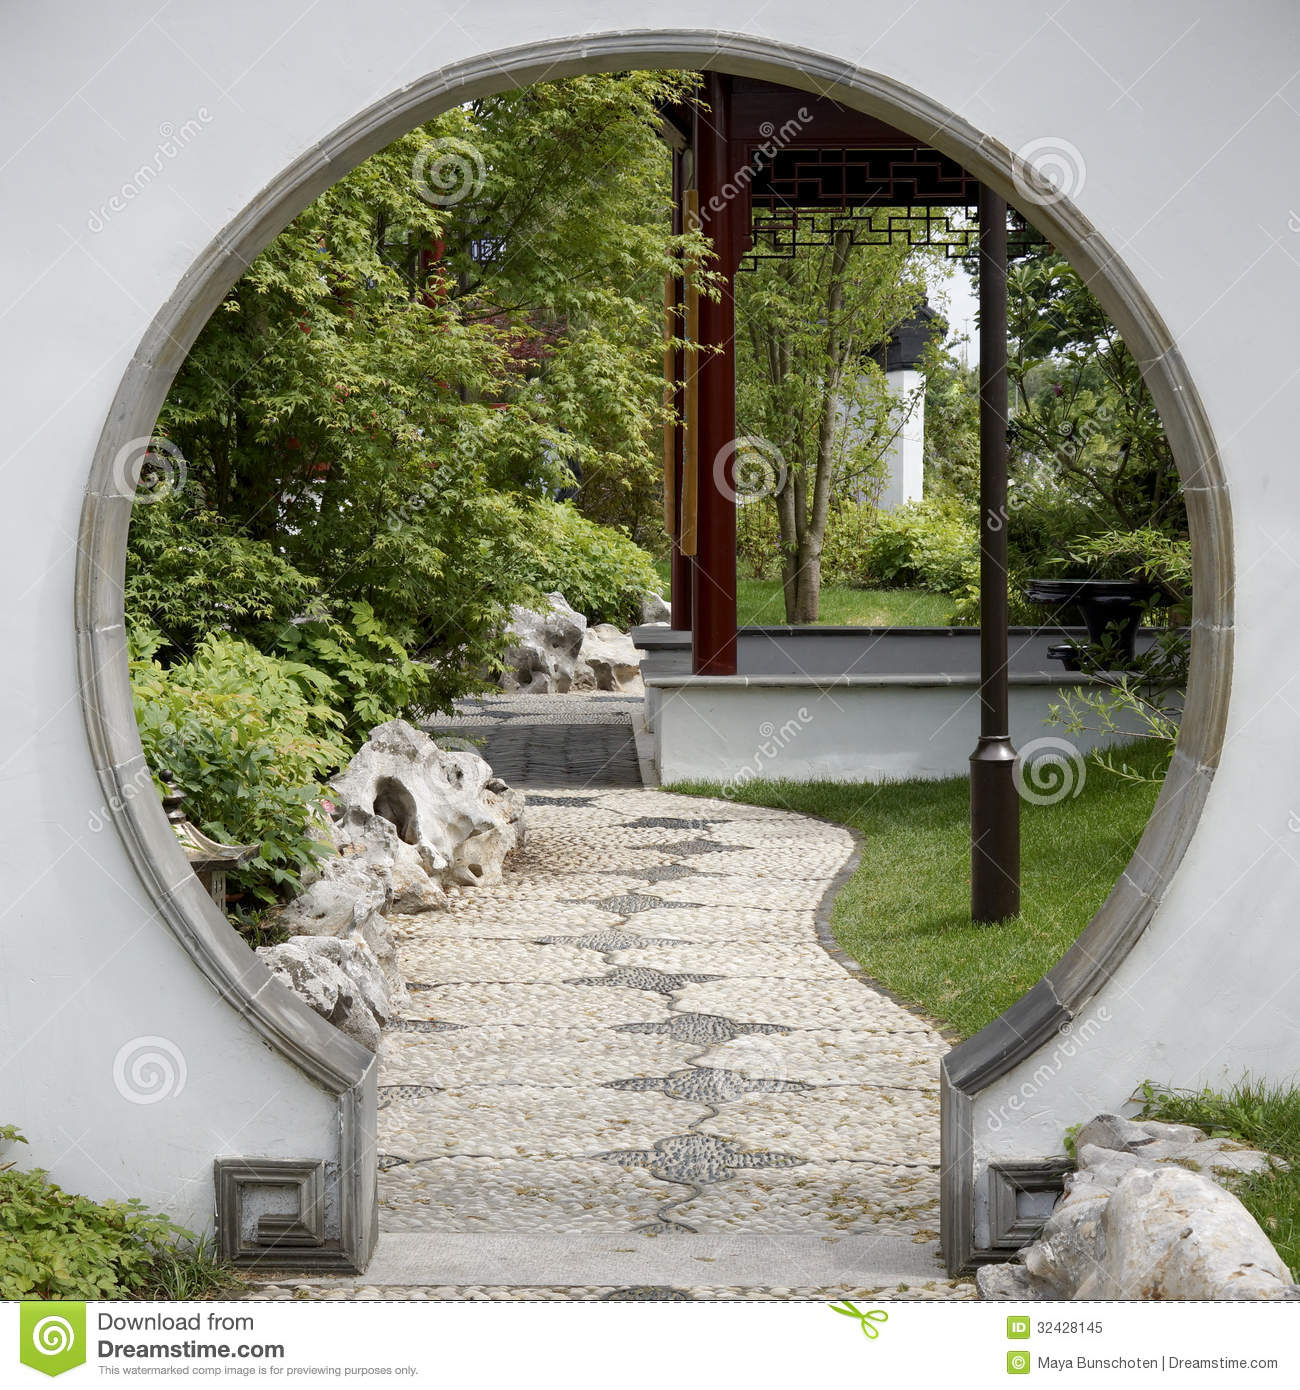 Garden Stock Image Image Of Design: Gate To Japanese Garden Stock Image. Image Of Architecture